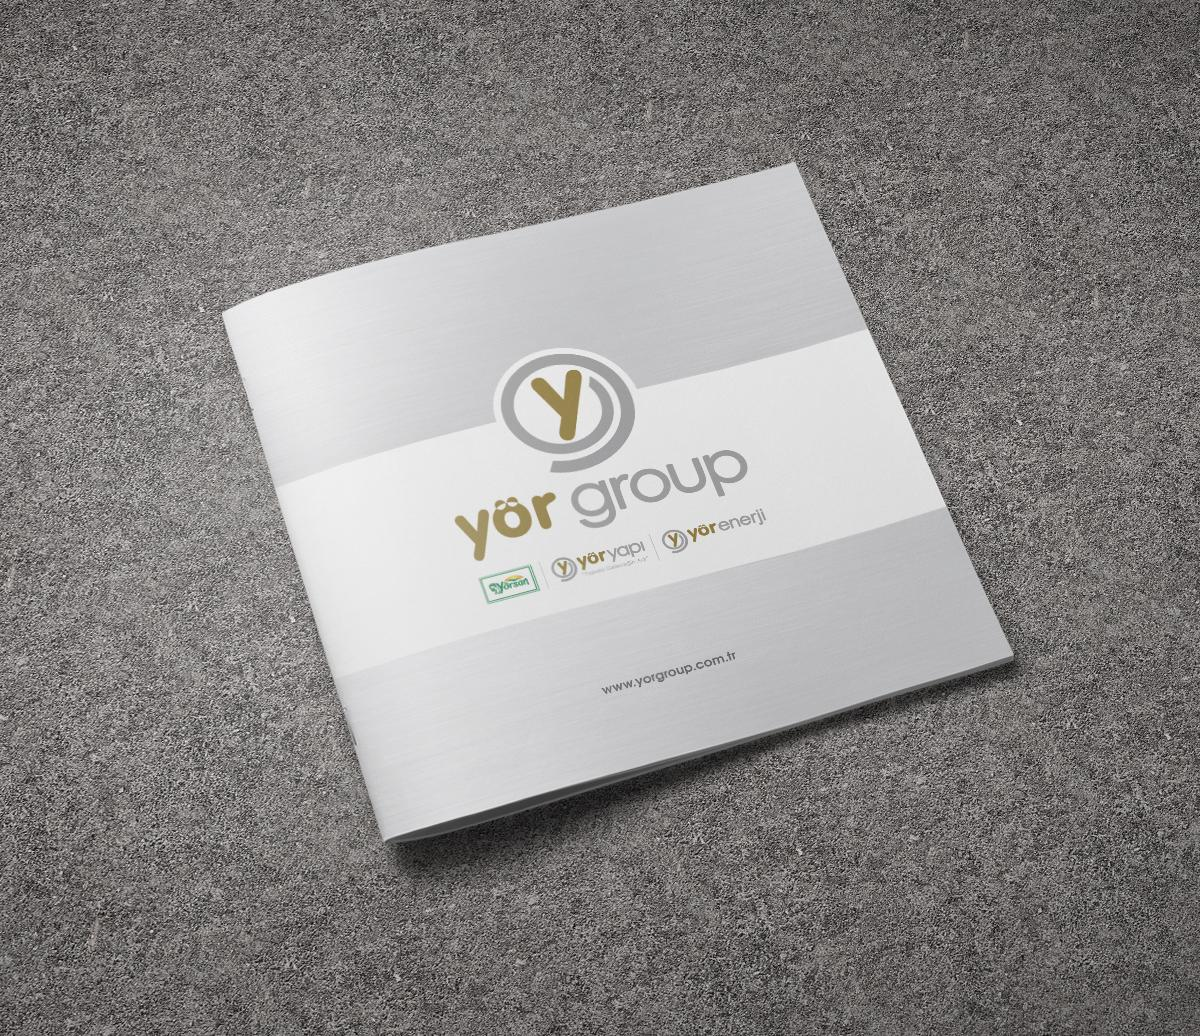 Yör Group